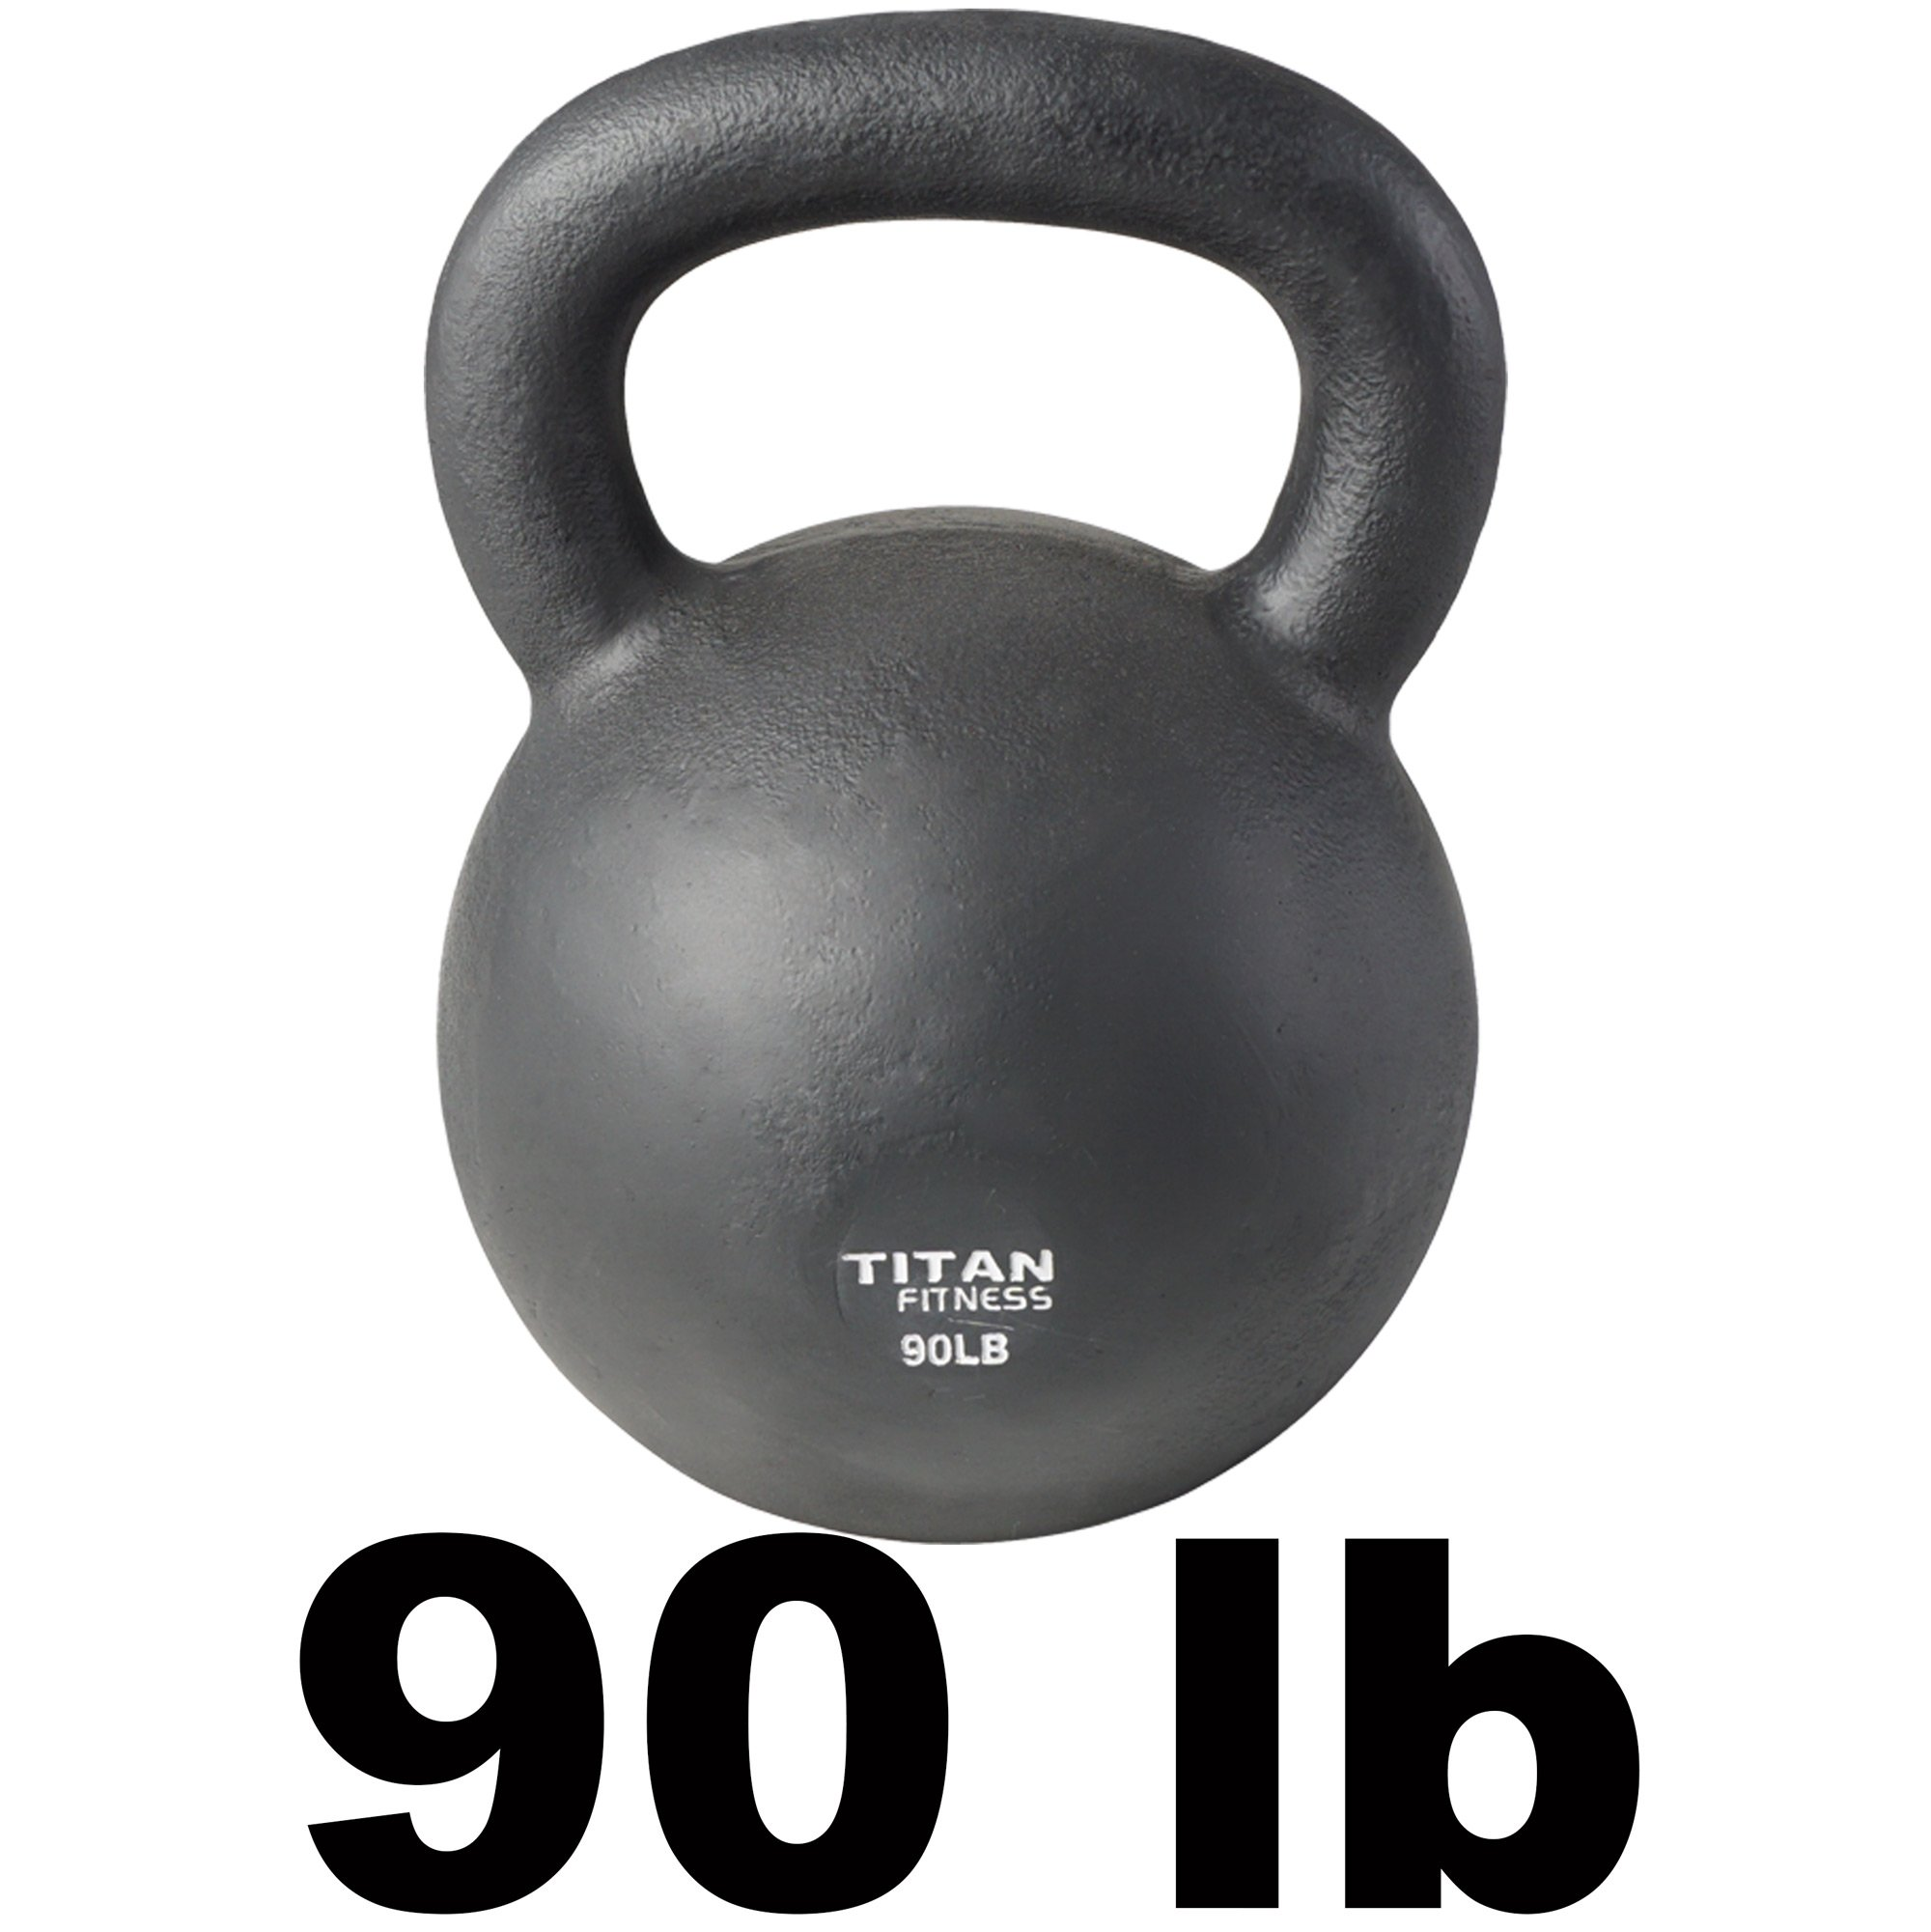 Cast Iron Kettlebell Weight 90 lb Natural Solid Titan Fitness Workout Swing by Titan Fitness (Image #2)